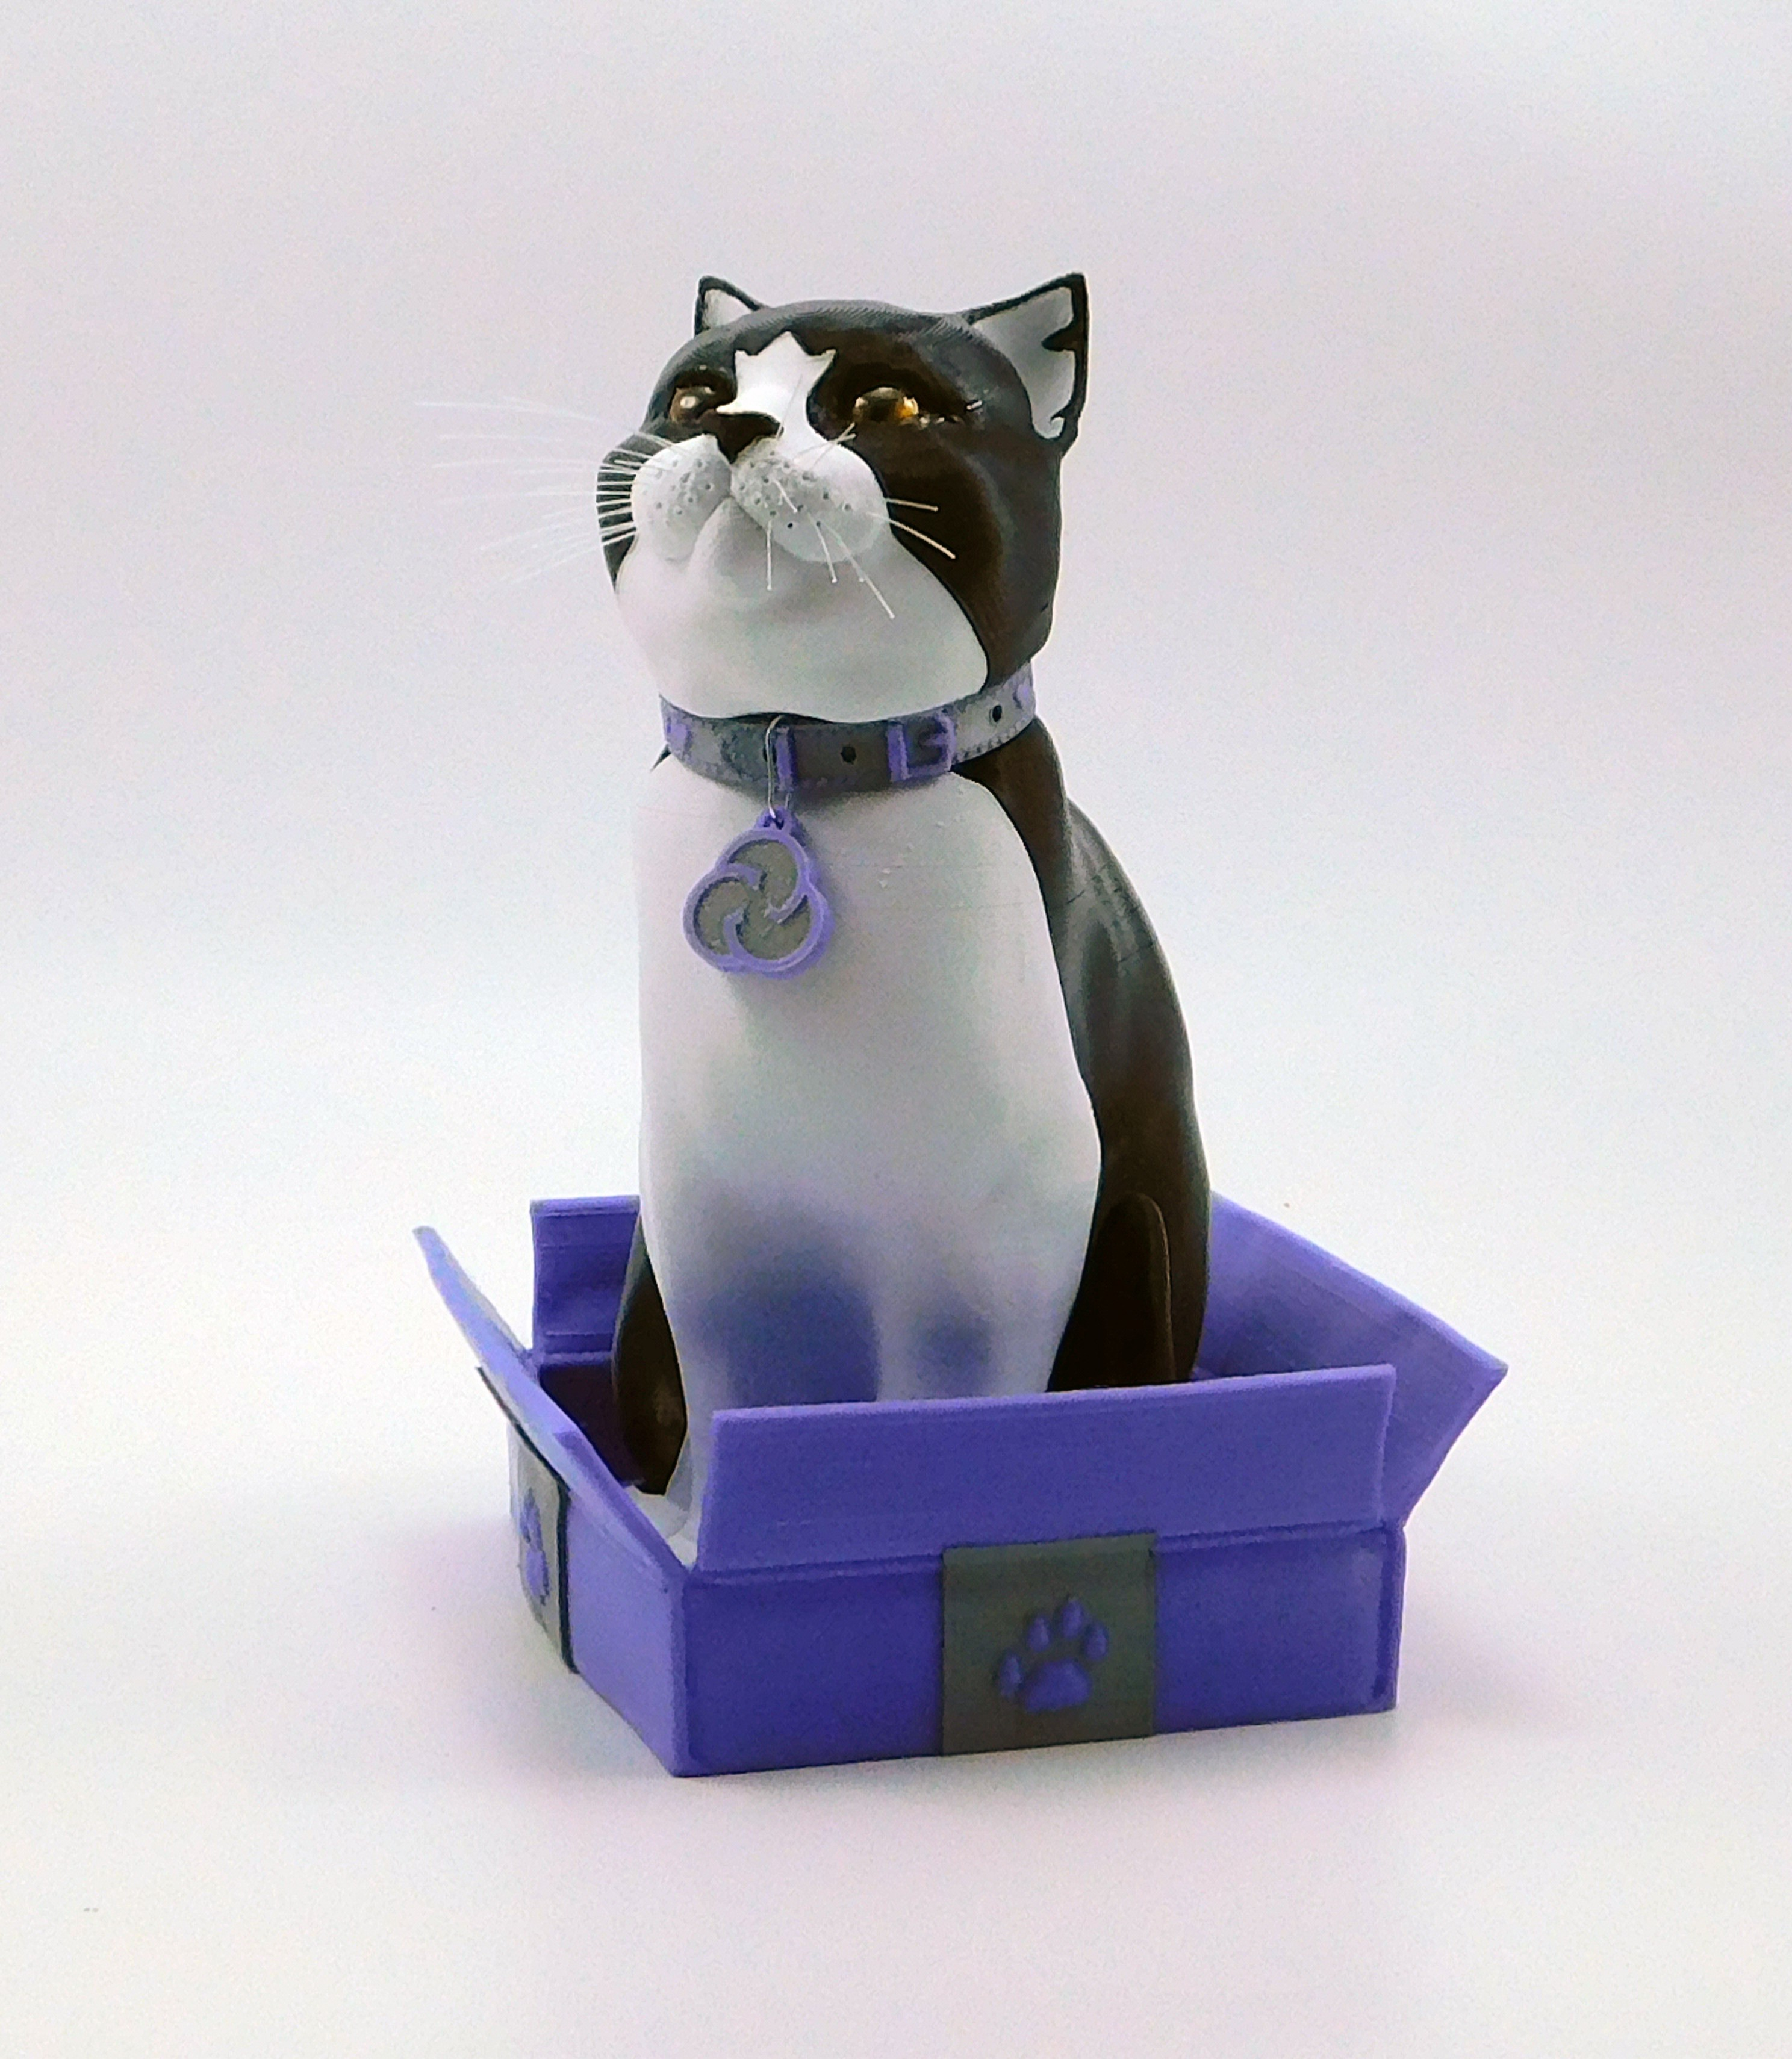 cults3d_cats2.jpg Download STL file Schrodinky: British Shorthair Cat in a Box – 3D Printable, Multi Part Model - MULTI EXTRUSION PACKAGE • Object to 3D print, loubie